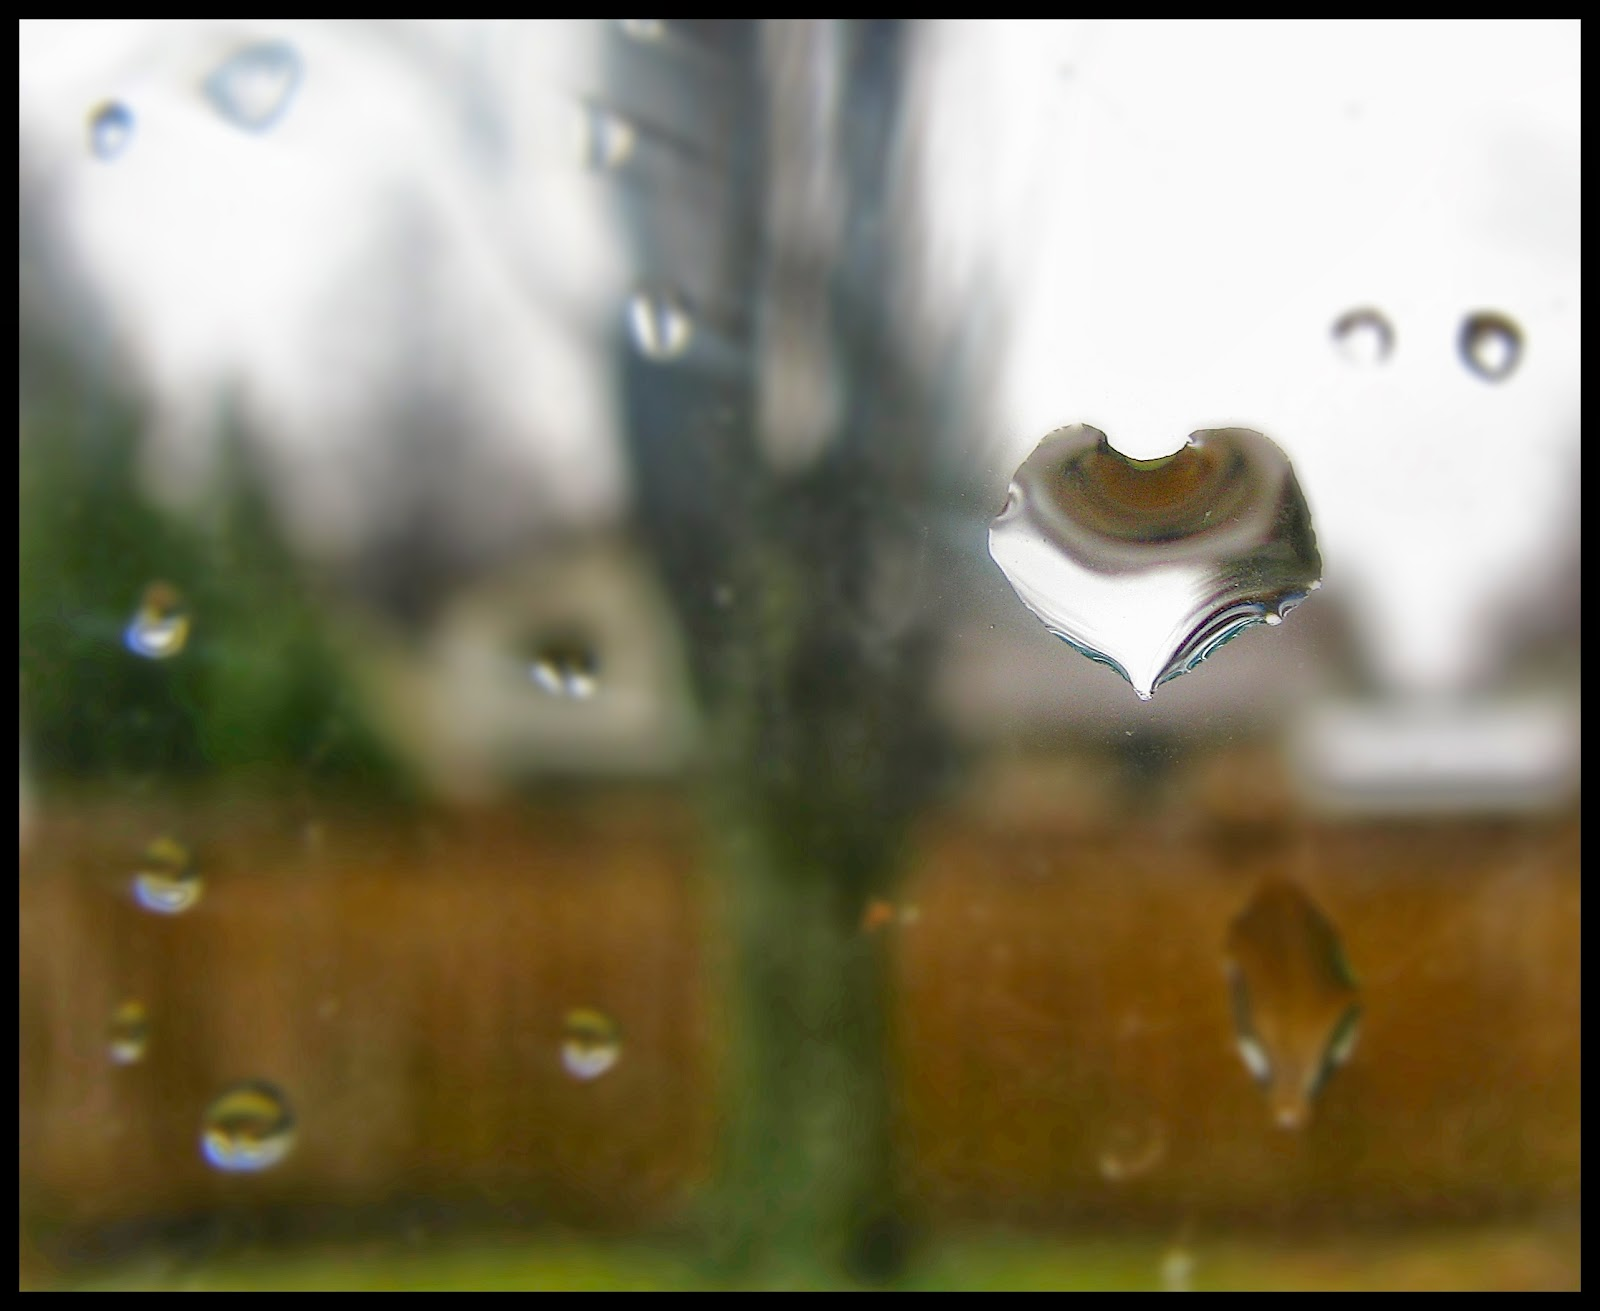 Rain love,Rain Love Wallpaper Picture Gallery